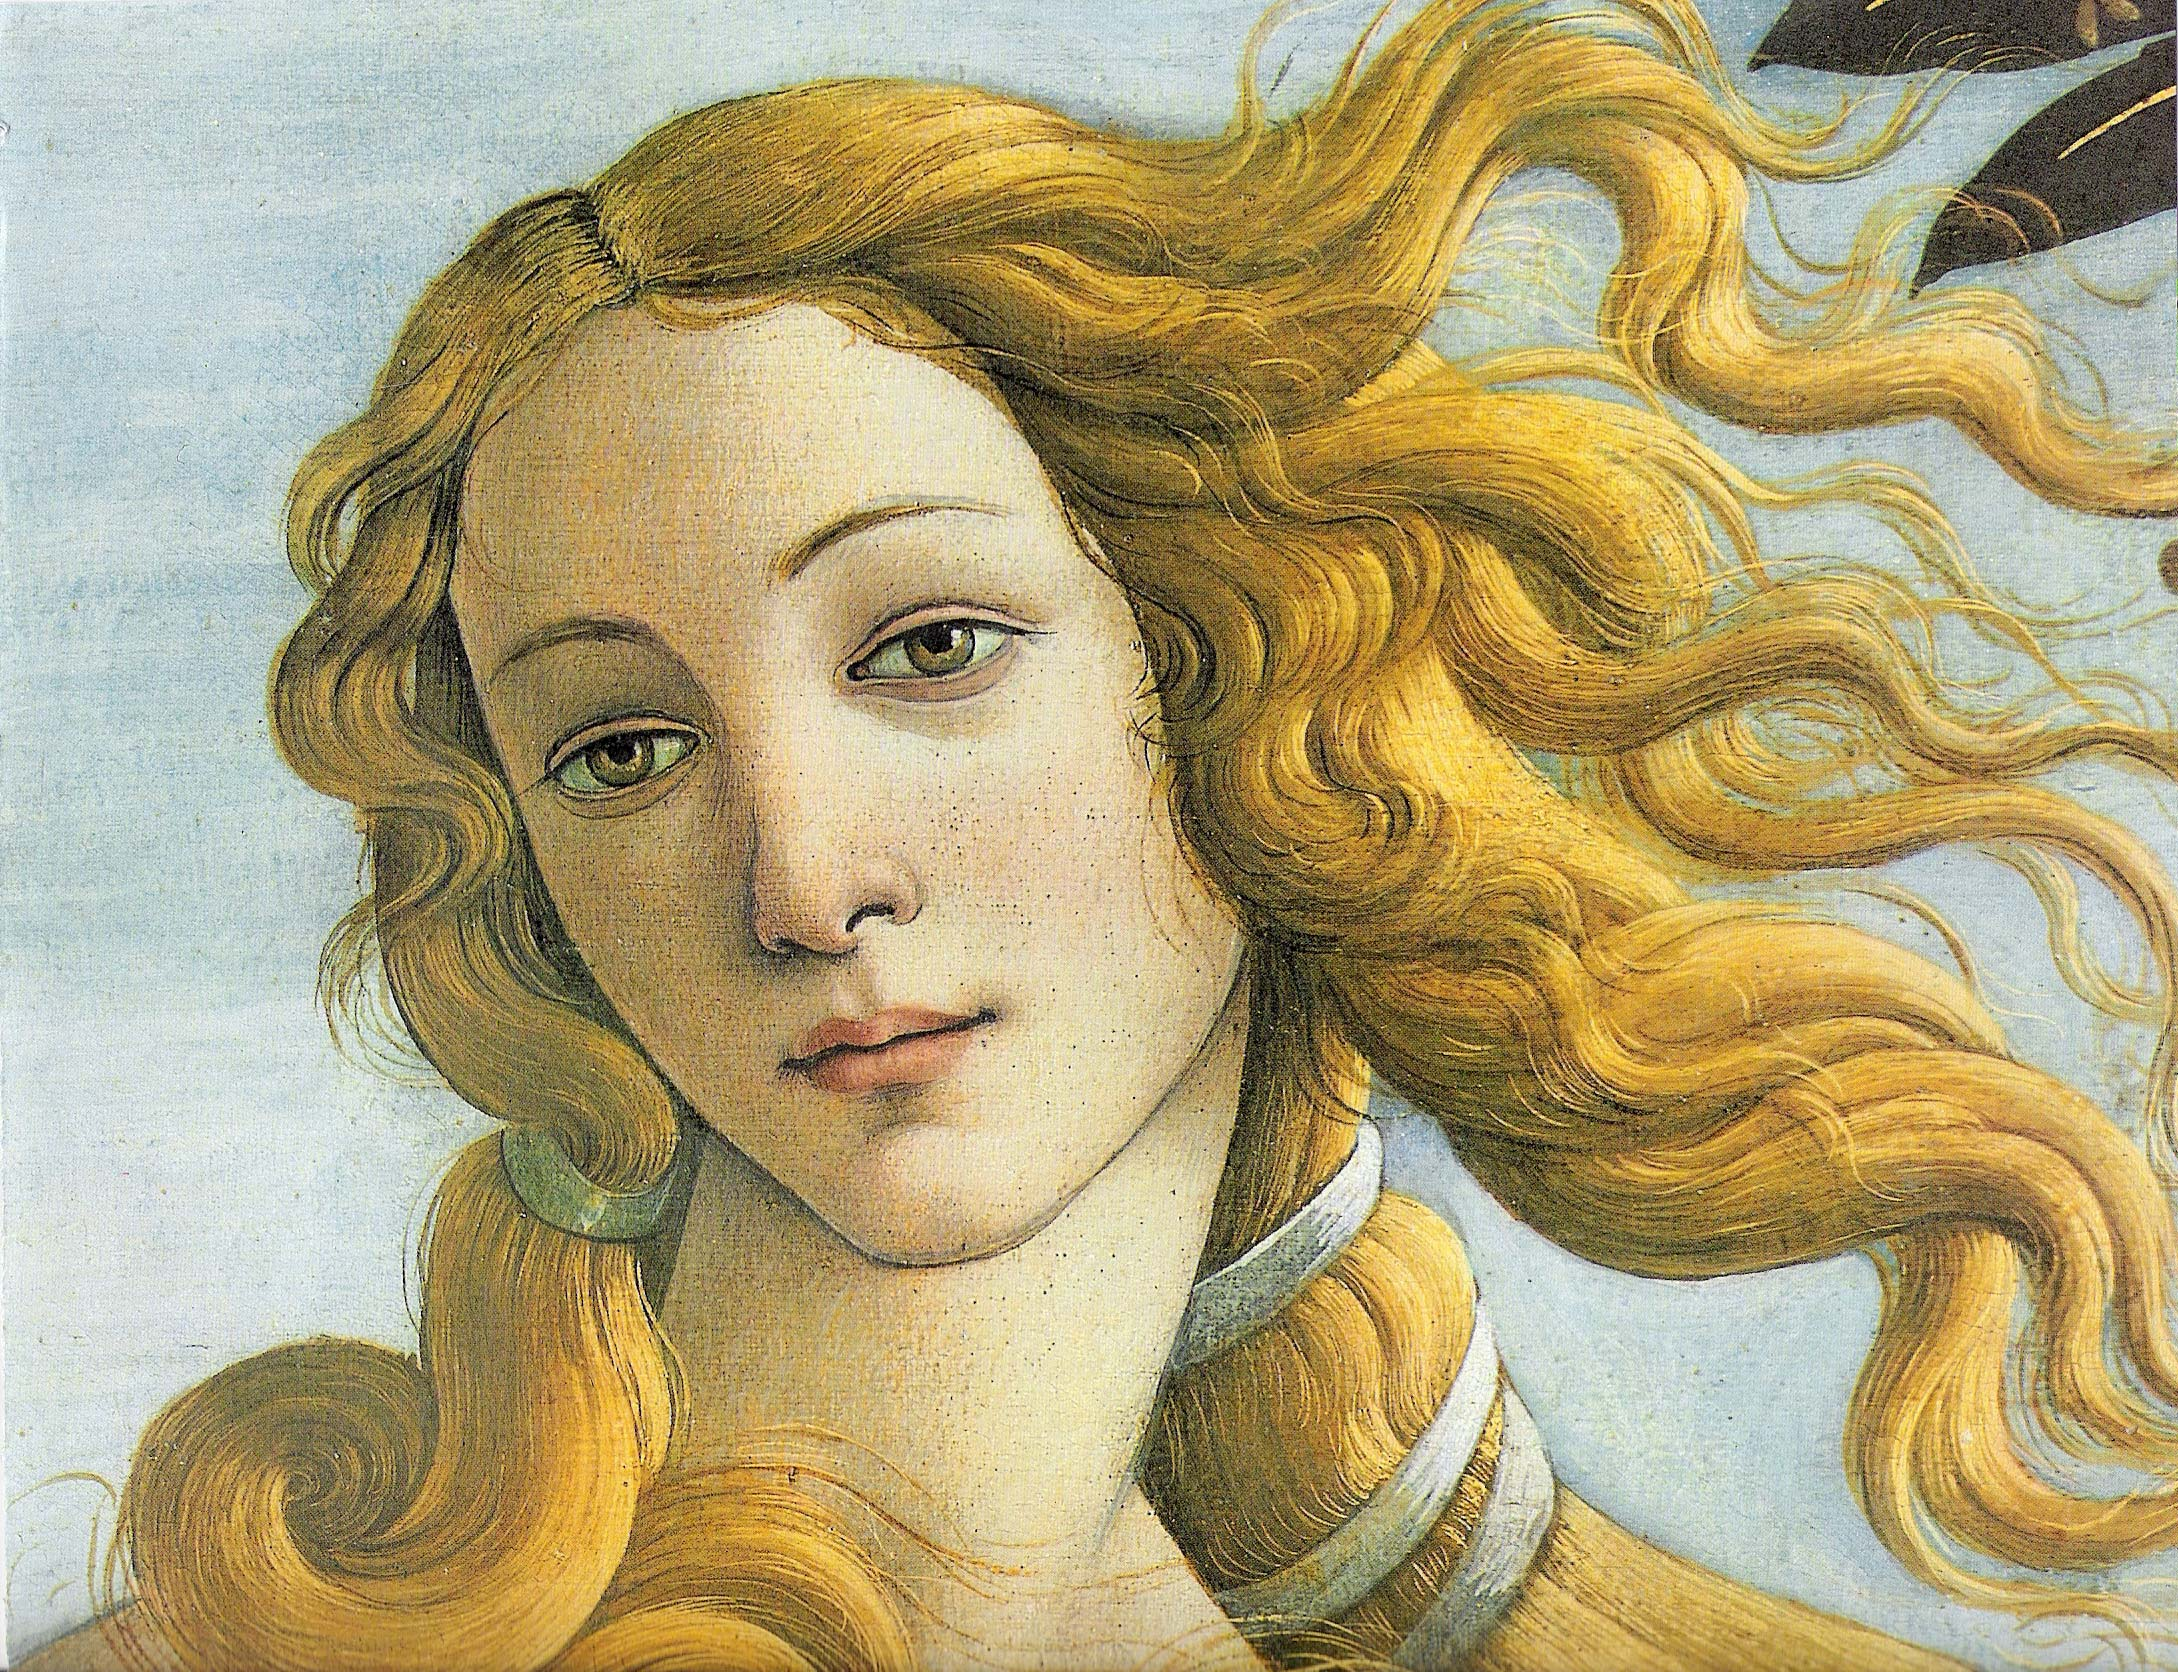 botticellis birth of venus essay Sandro botticelli's birth of venus differs in style from those of his contemporaries, as it seems to ignore the recent knowledge of anatomy and perspective.